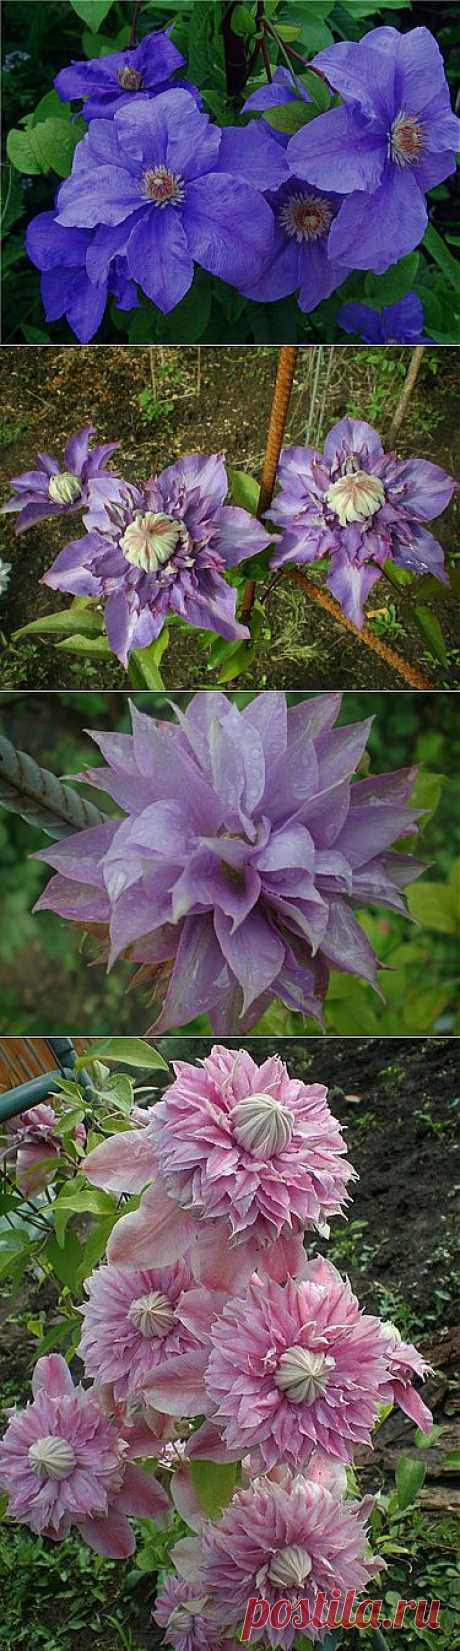 Klematis. (Clematis) Cultivation and leaving - the Flower forum